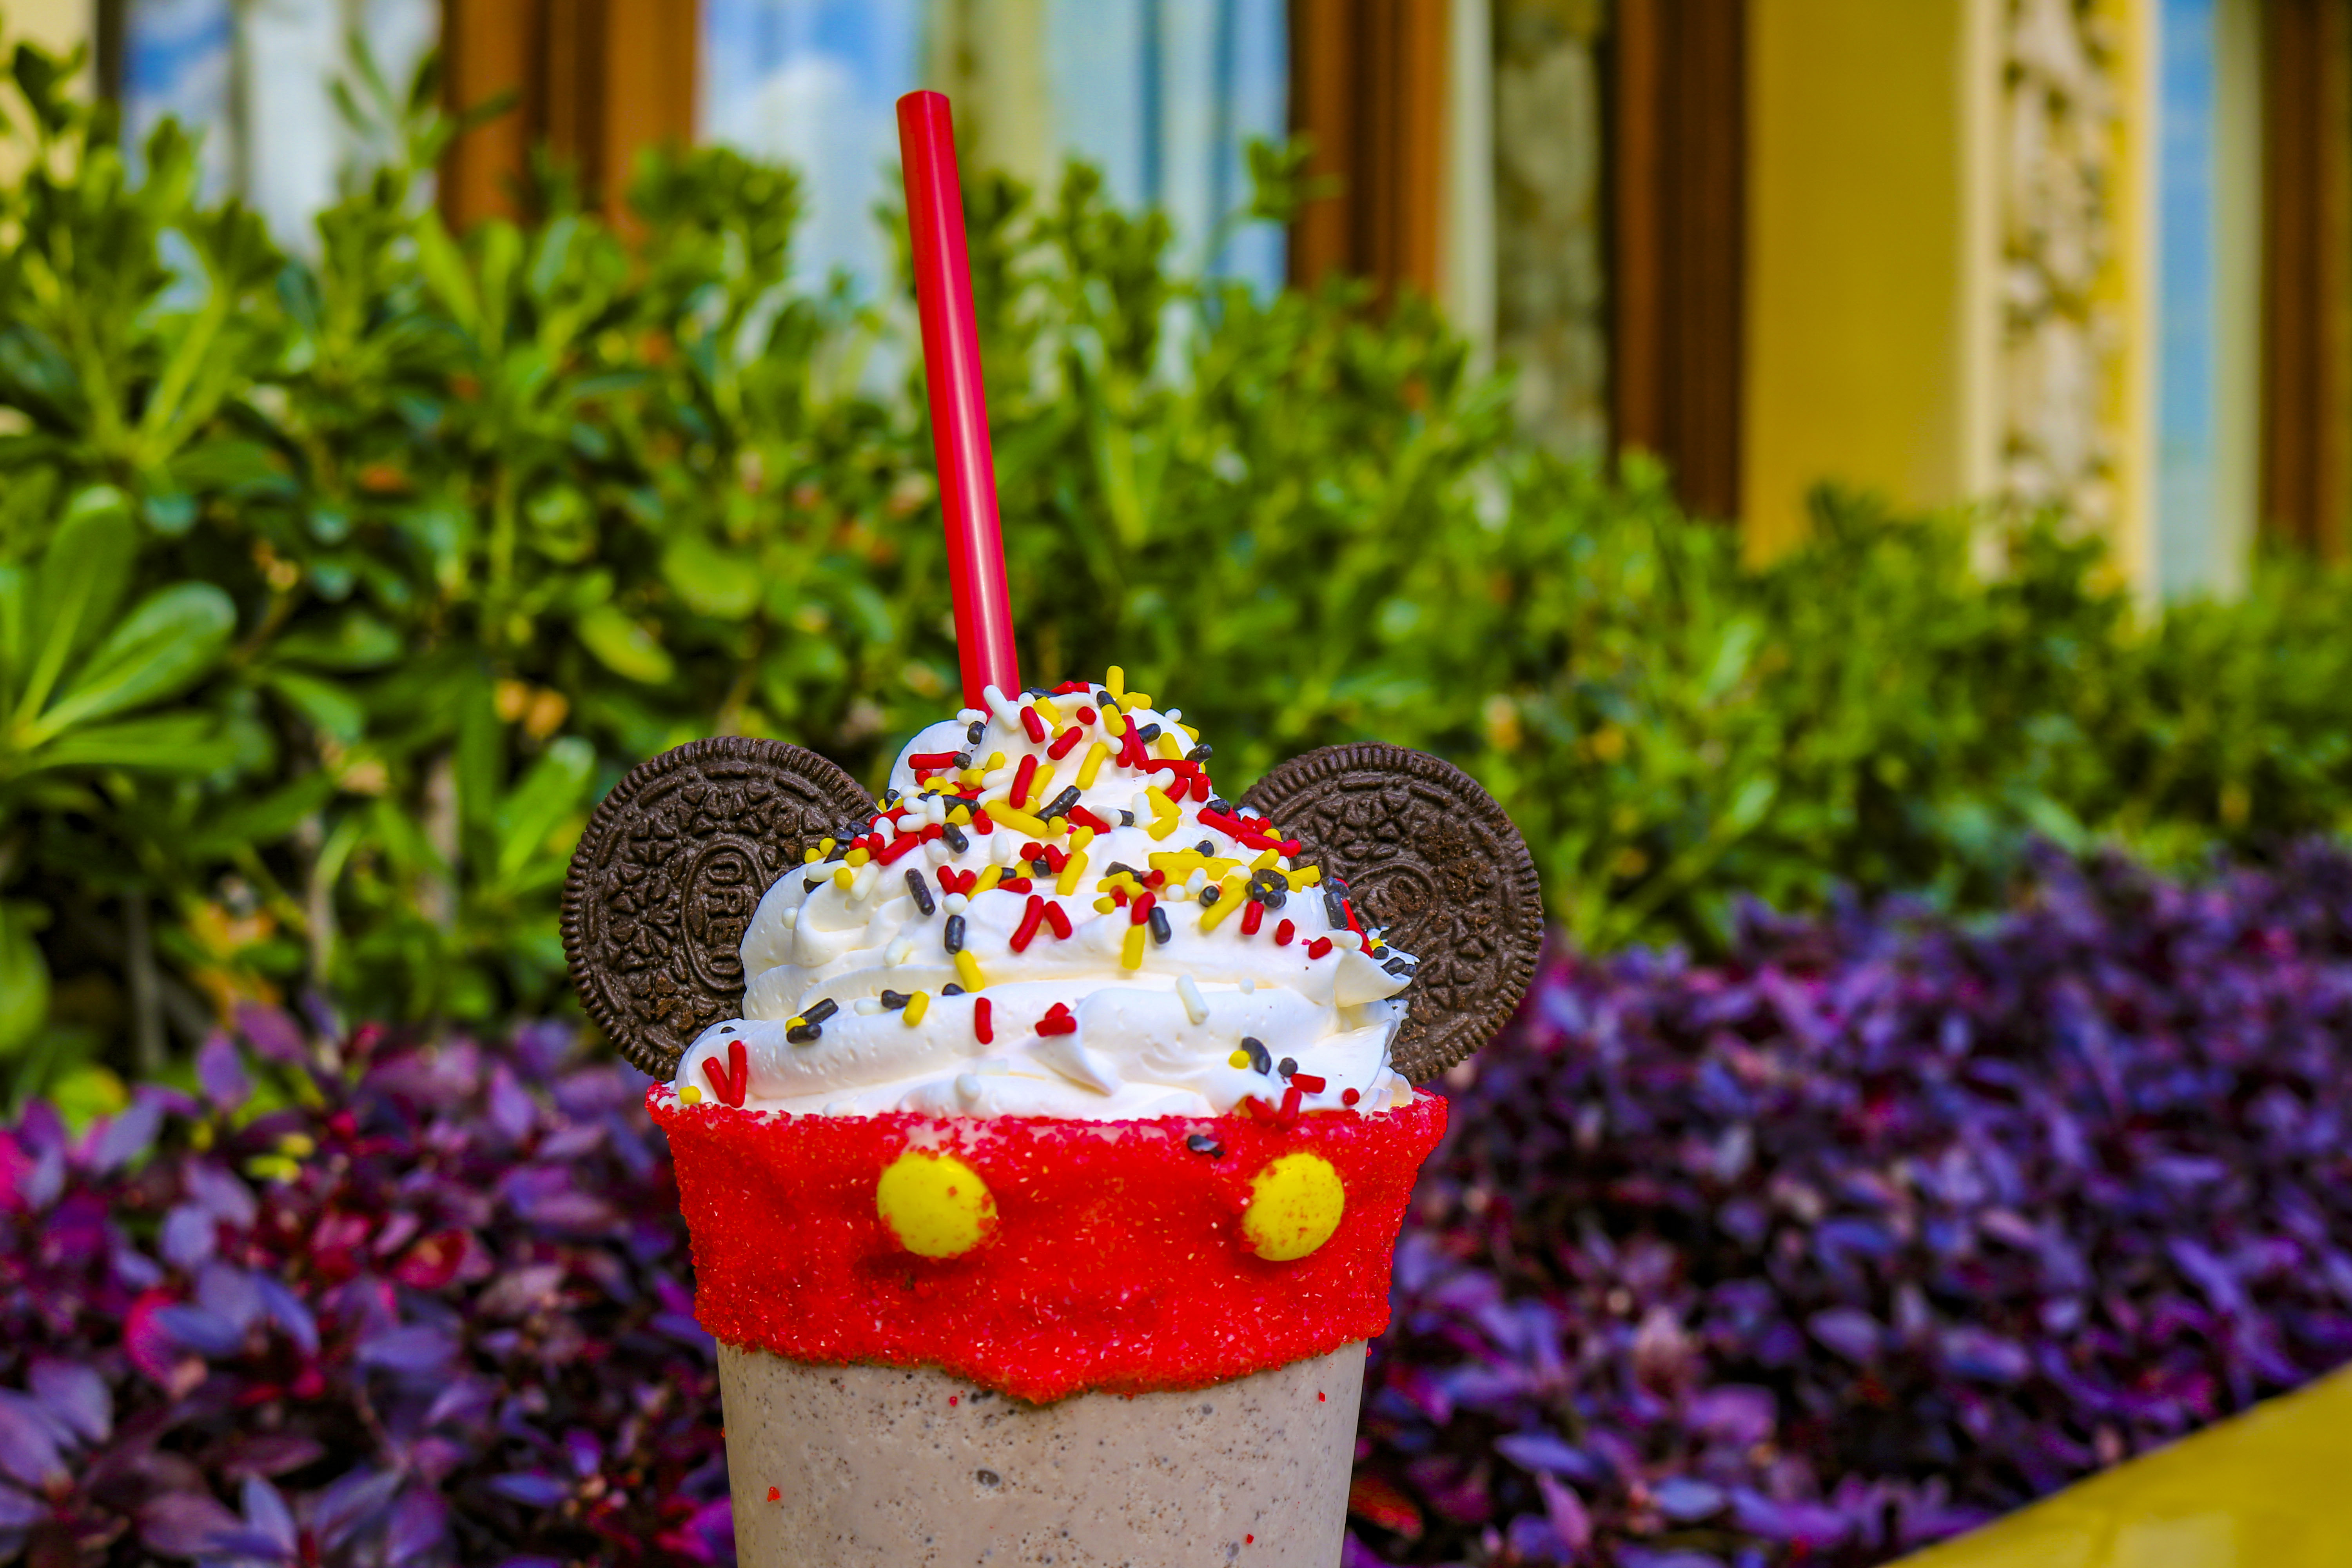 This shake features Mickey sprinkles, oreo mouse ears, and plenty of whip cream!